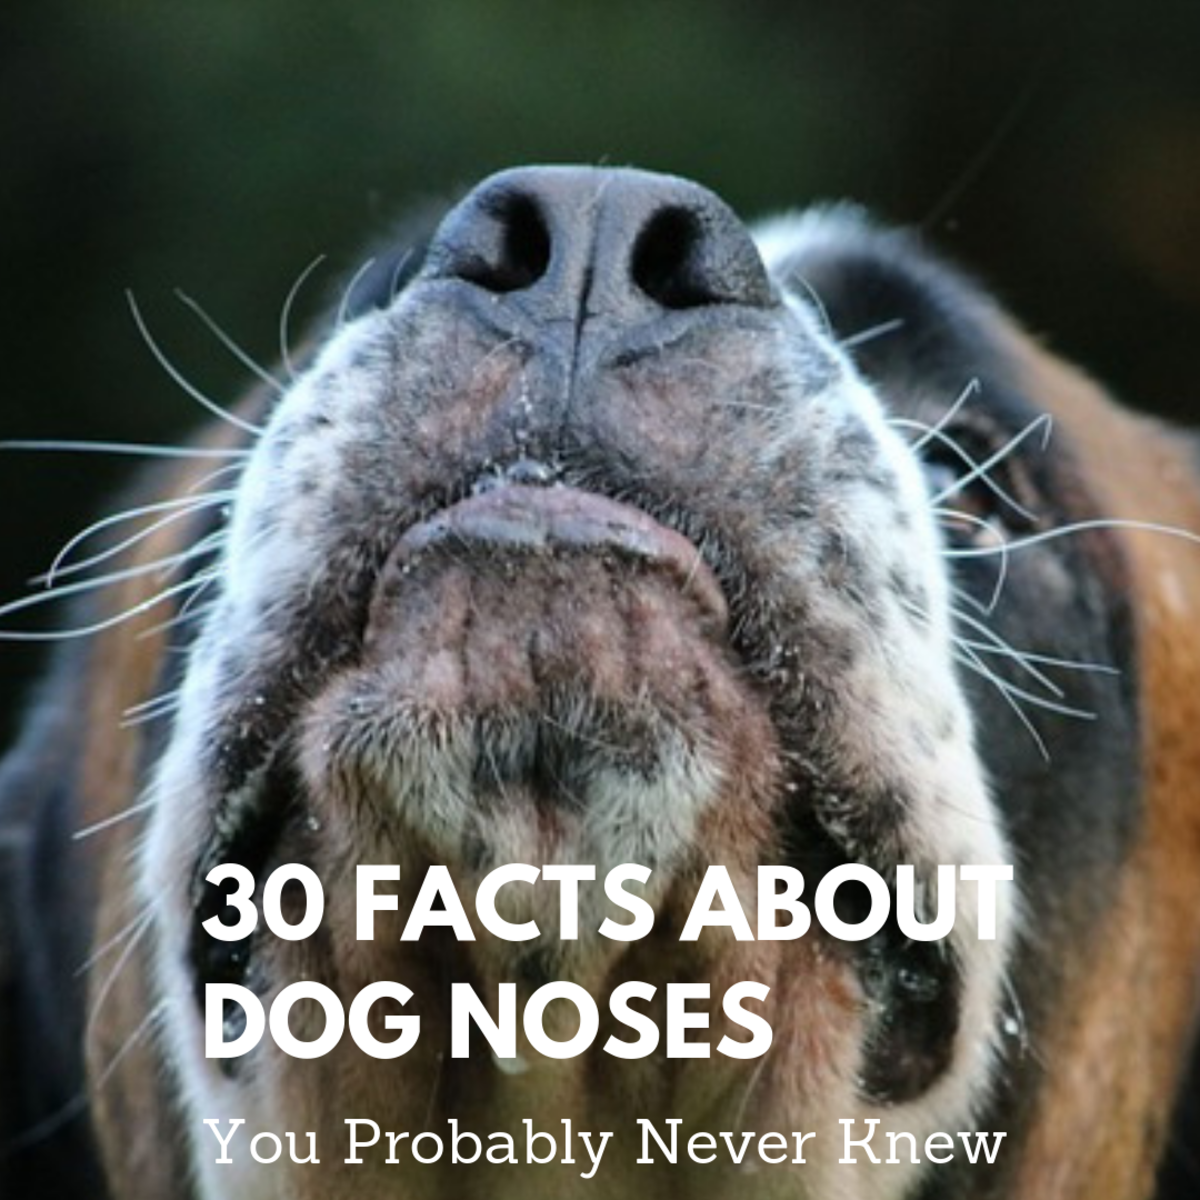 30 Mind Blowing Facts About Dog Noses You Probably Didn't Know Until Now